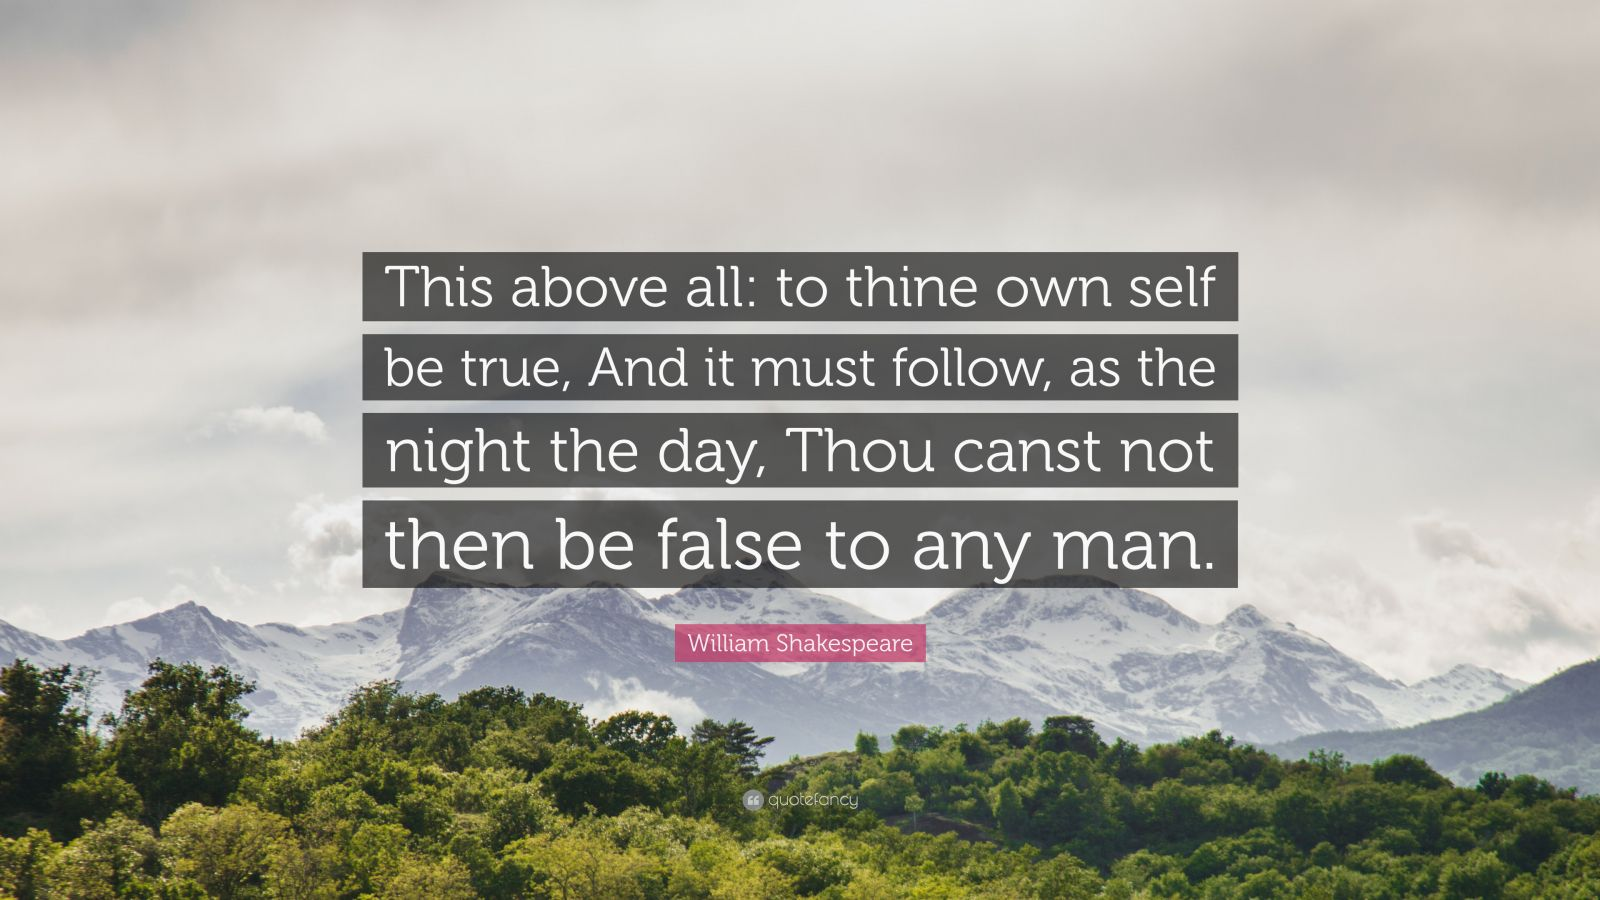 this above all to thine ownself be true This above all, to thine own self be true by william shakespeare from life quotes and sayings from my collection of quotes about life.